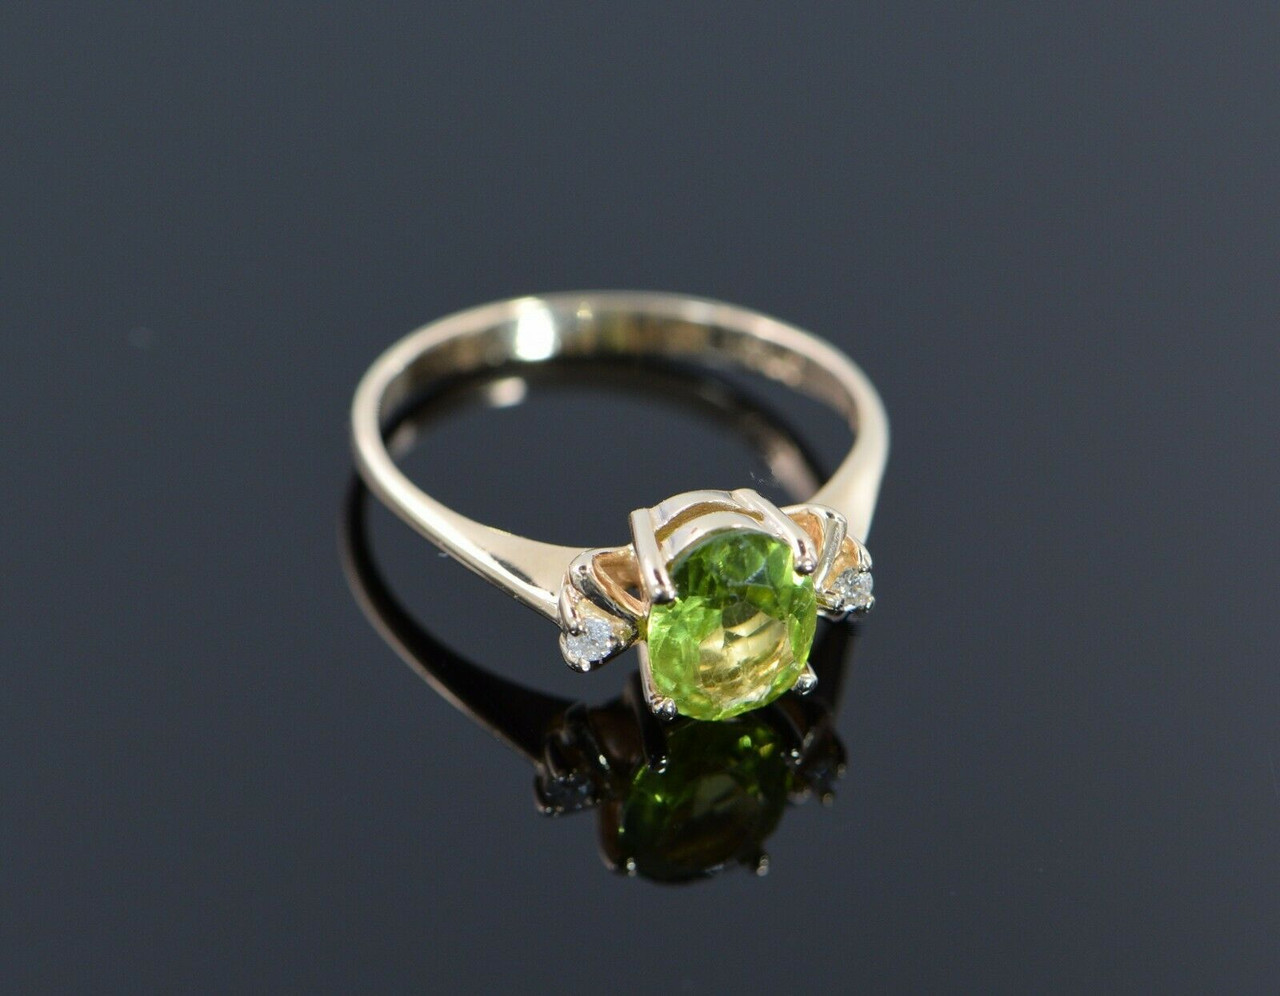 size 6.75 vintage sterling charoite and peridot ring